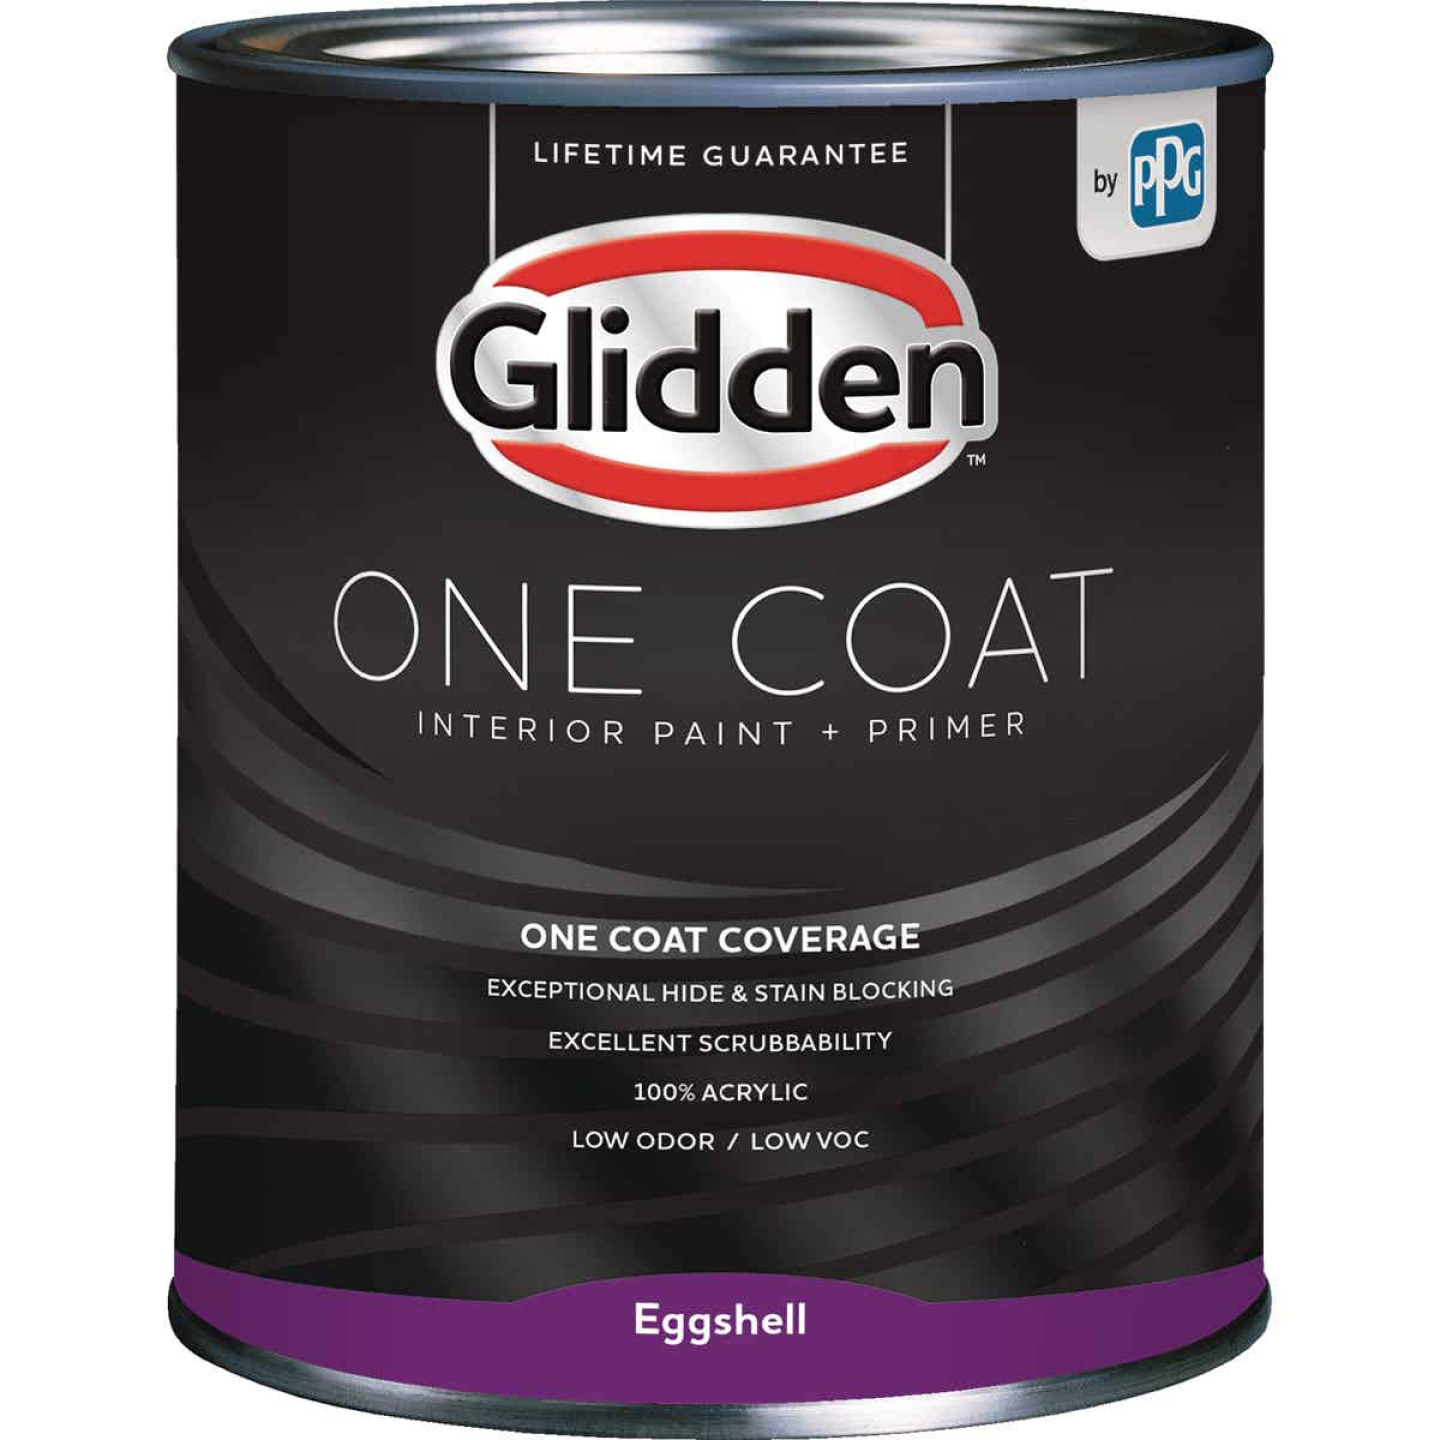 Glidden One Coat Interior Paint + Primer Eggshell White & Pastel Base Quart Image 1